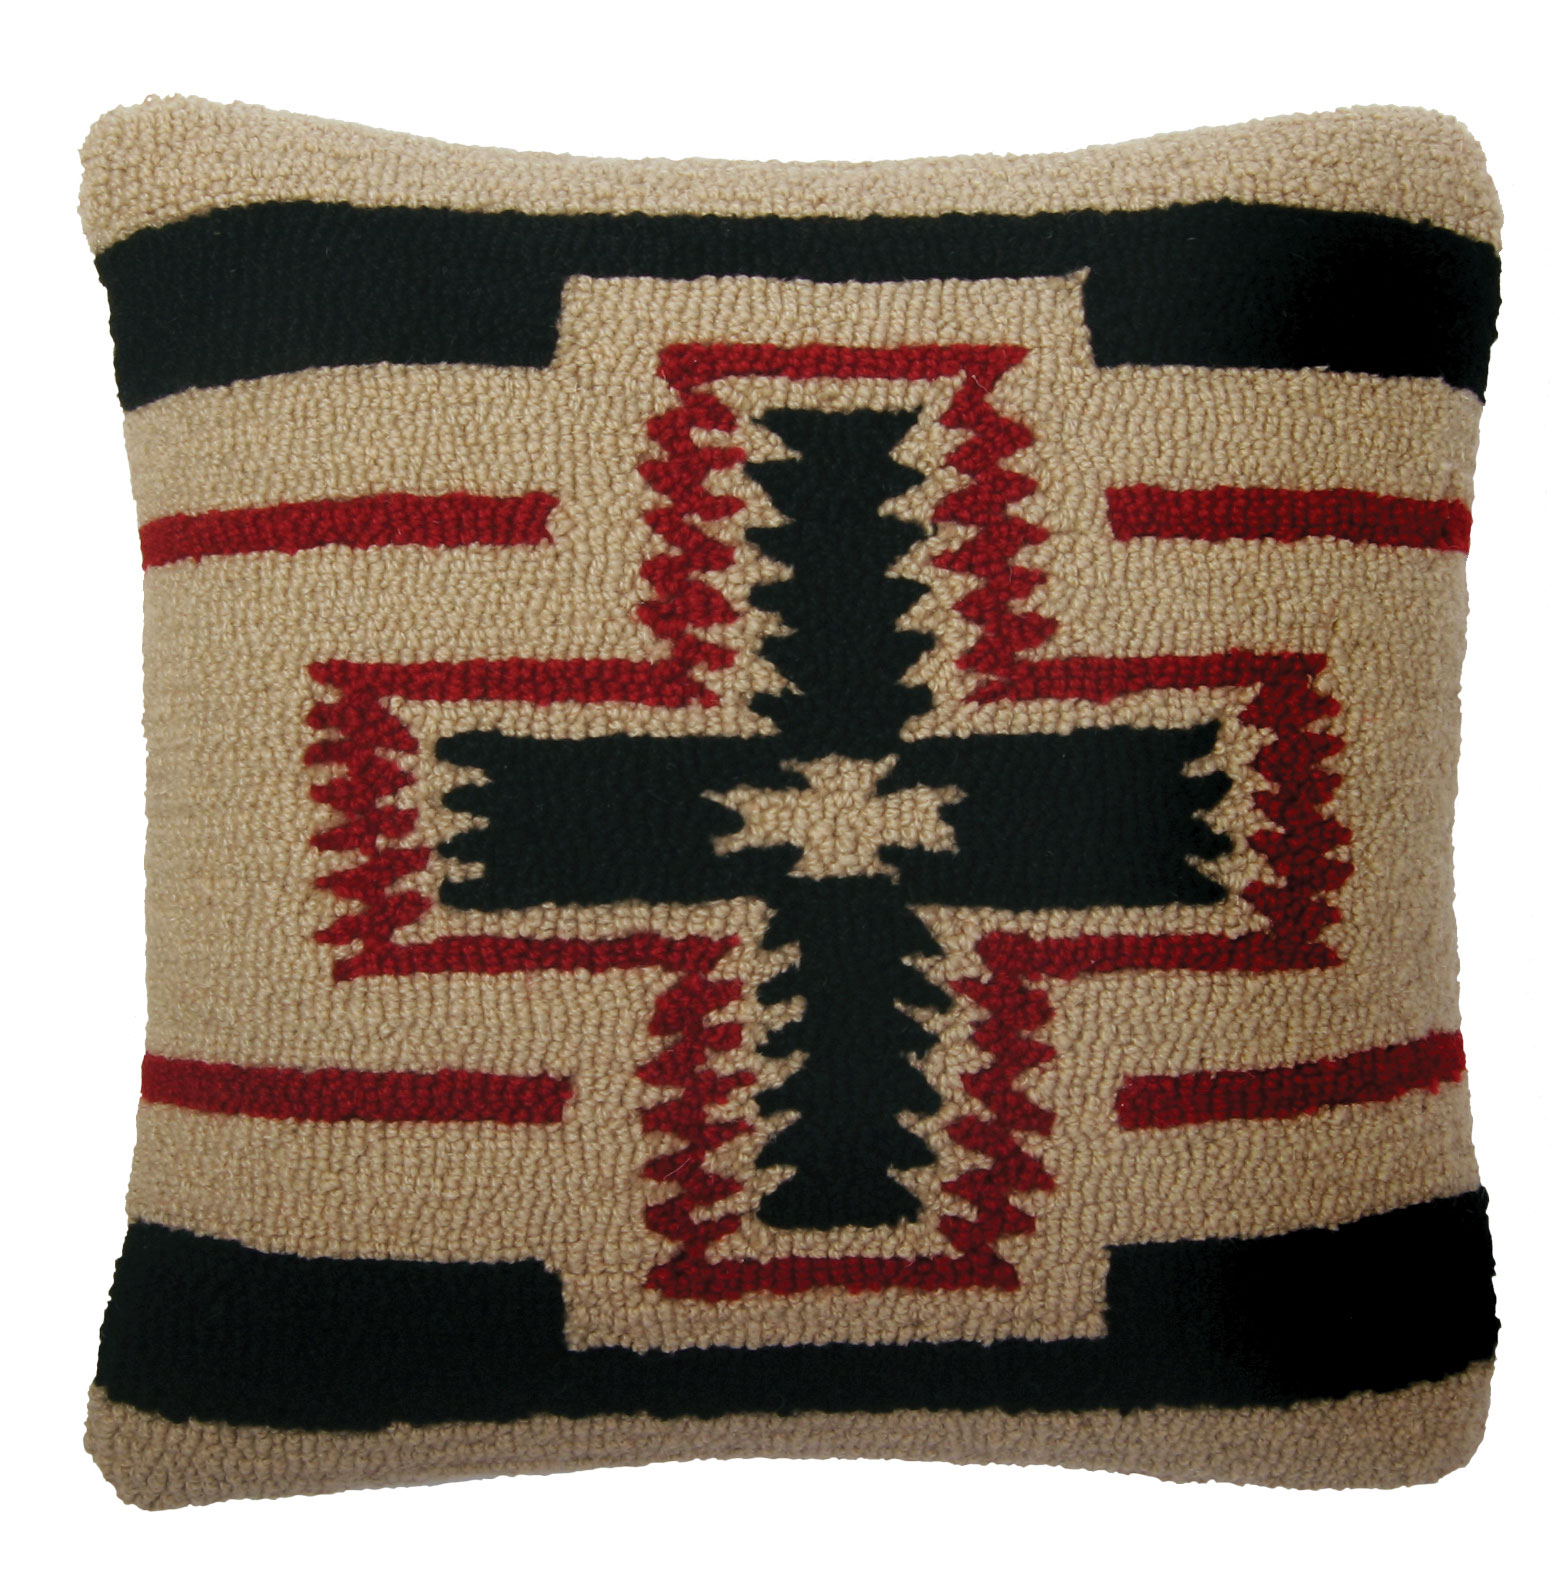 San Miguel Hooked Wool Pillow